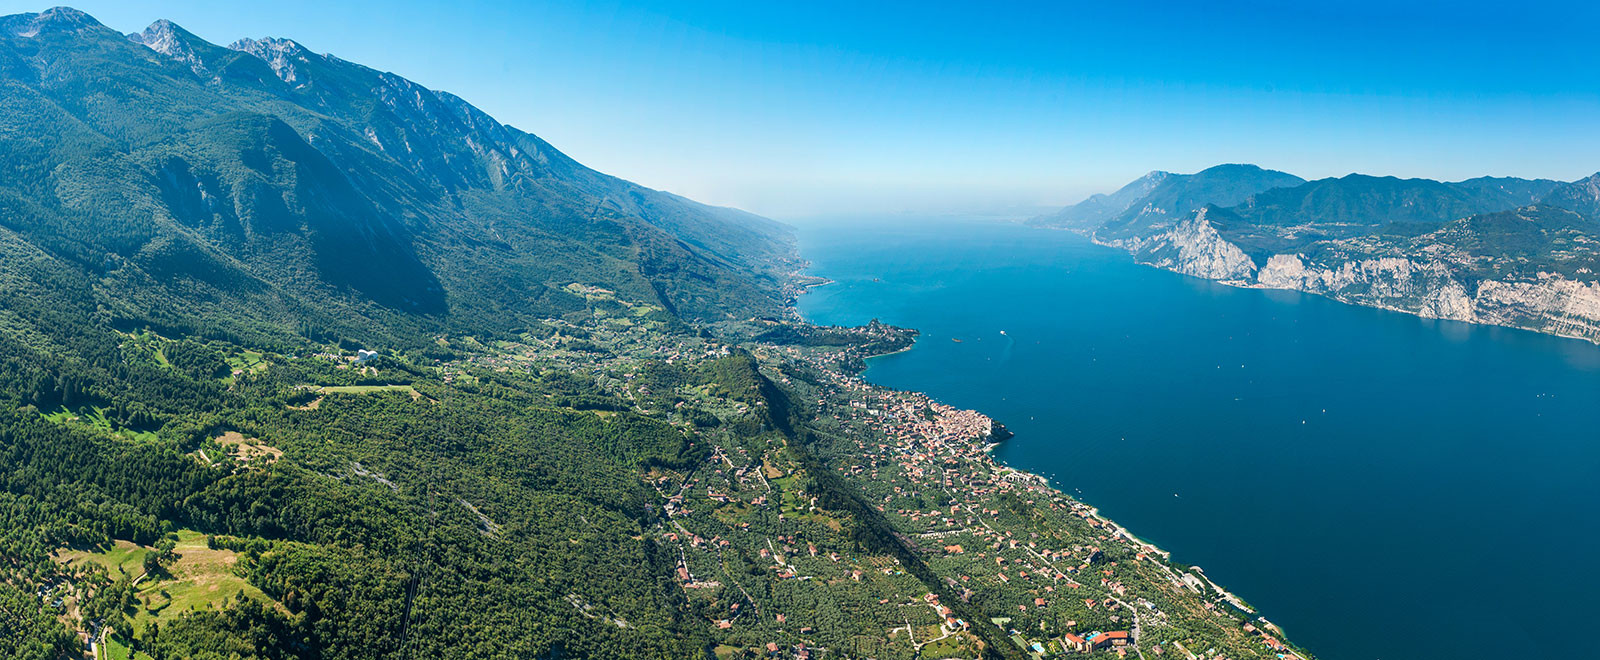 lake garda and monte baldo view from a tandem flight